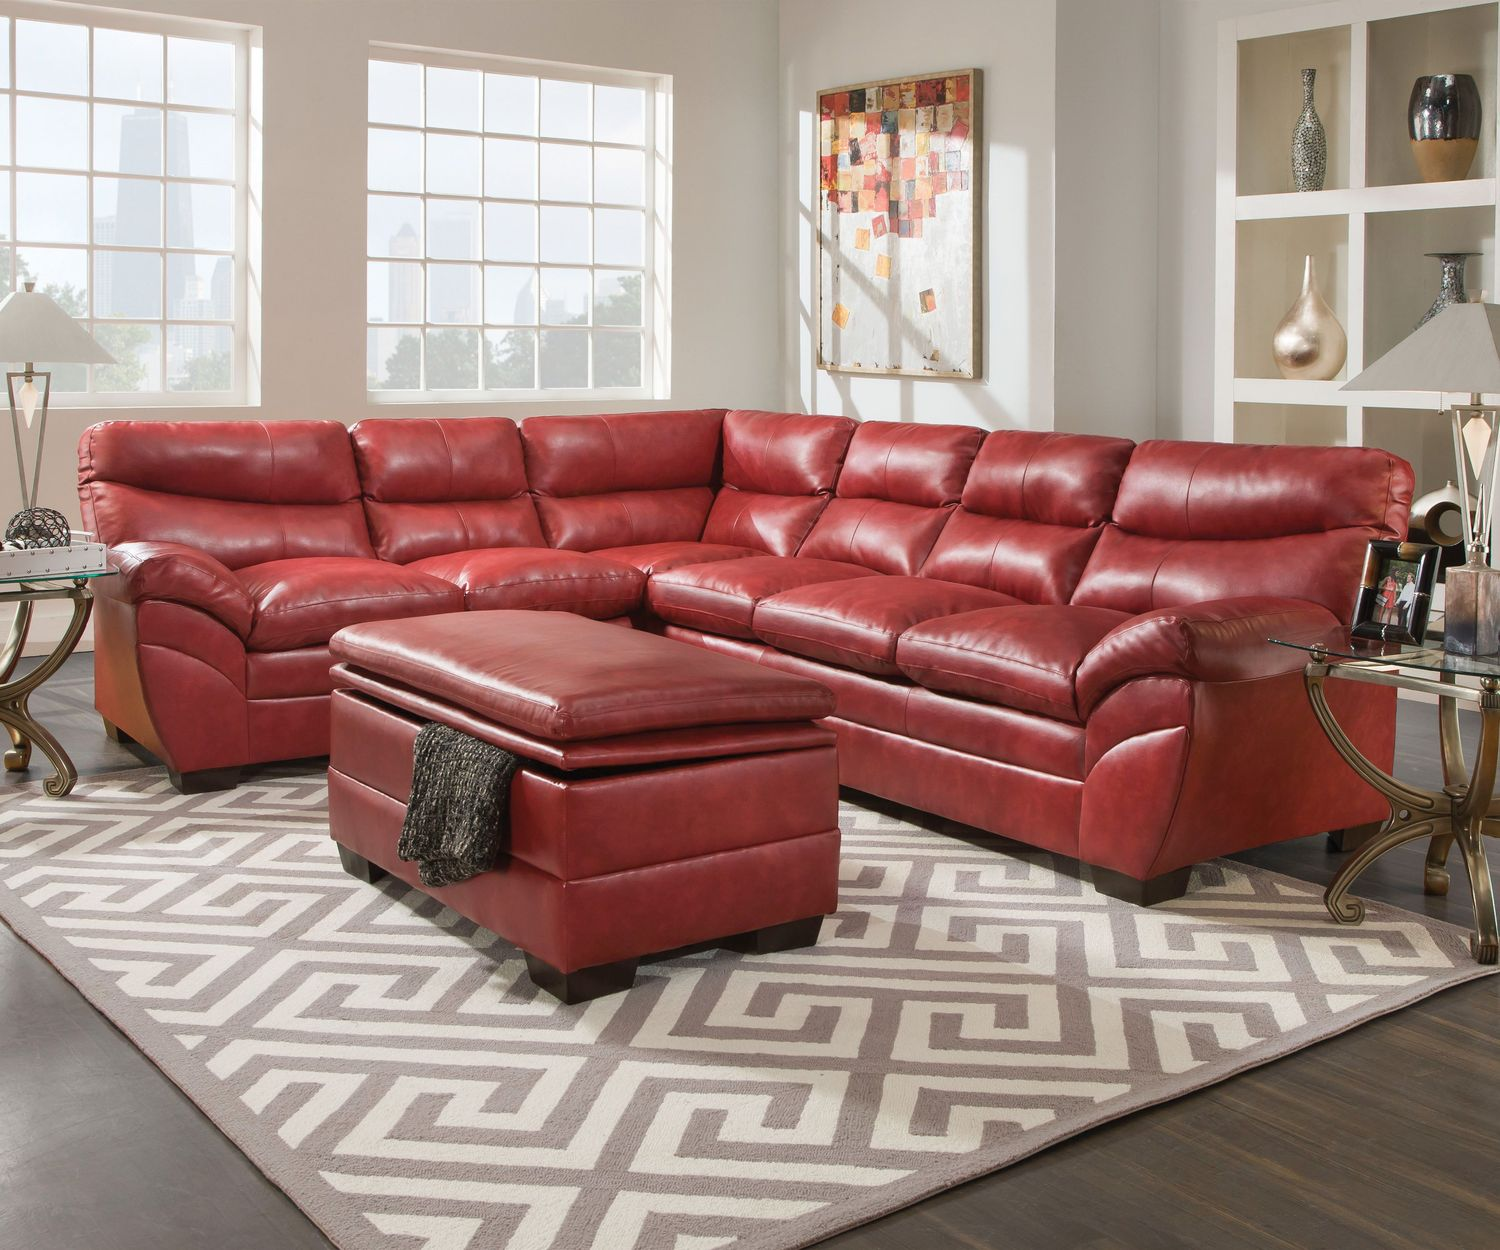 Quimby 2-Piece Blended Leather Sectional